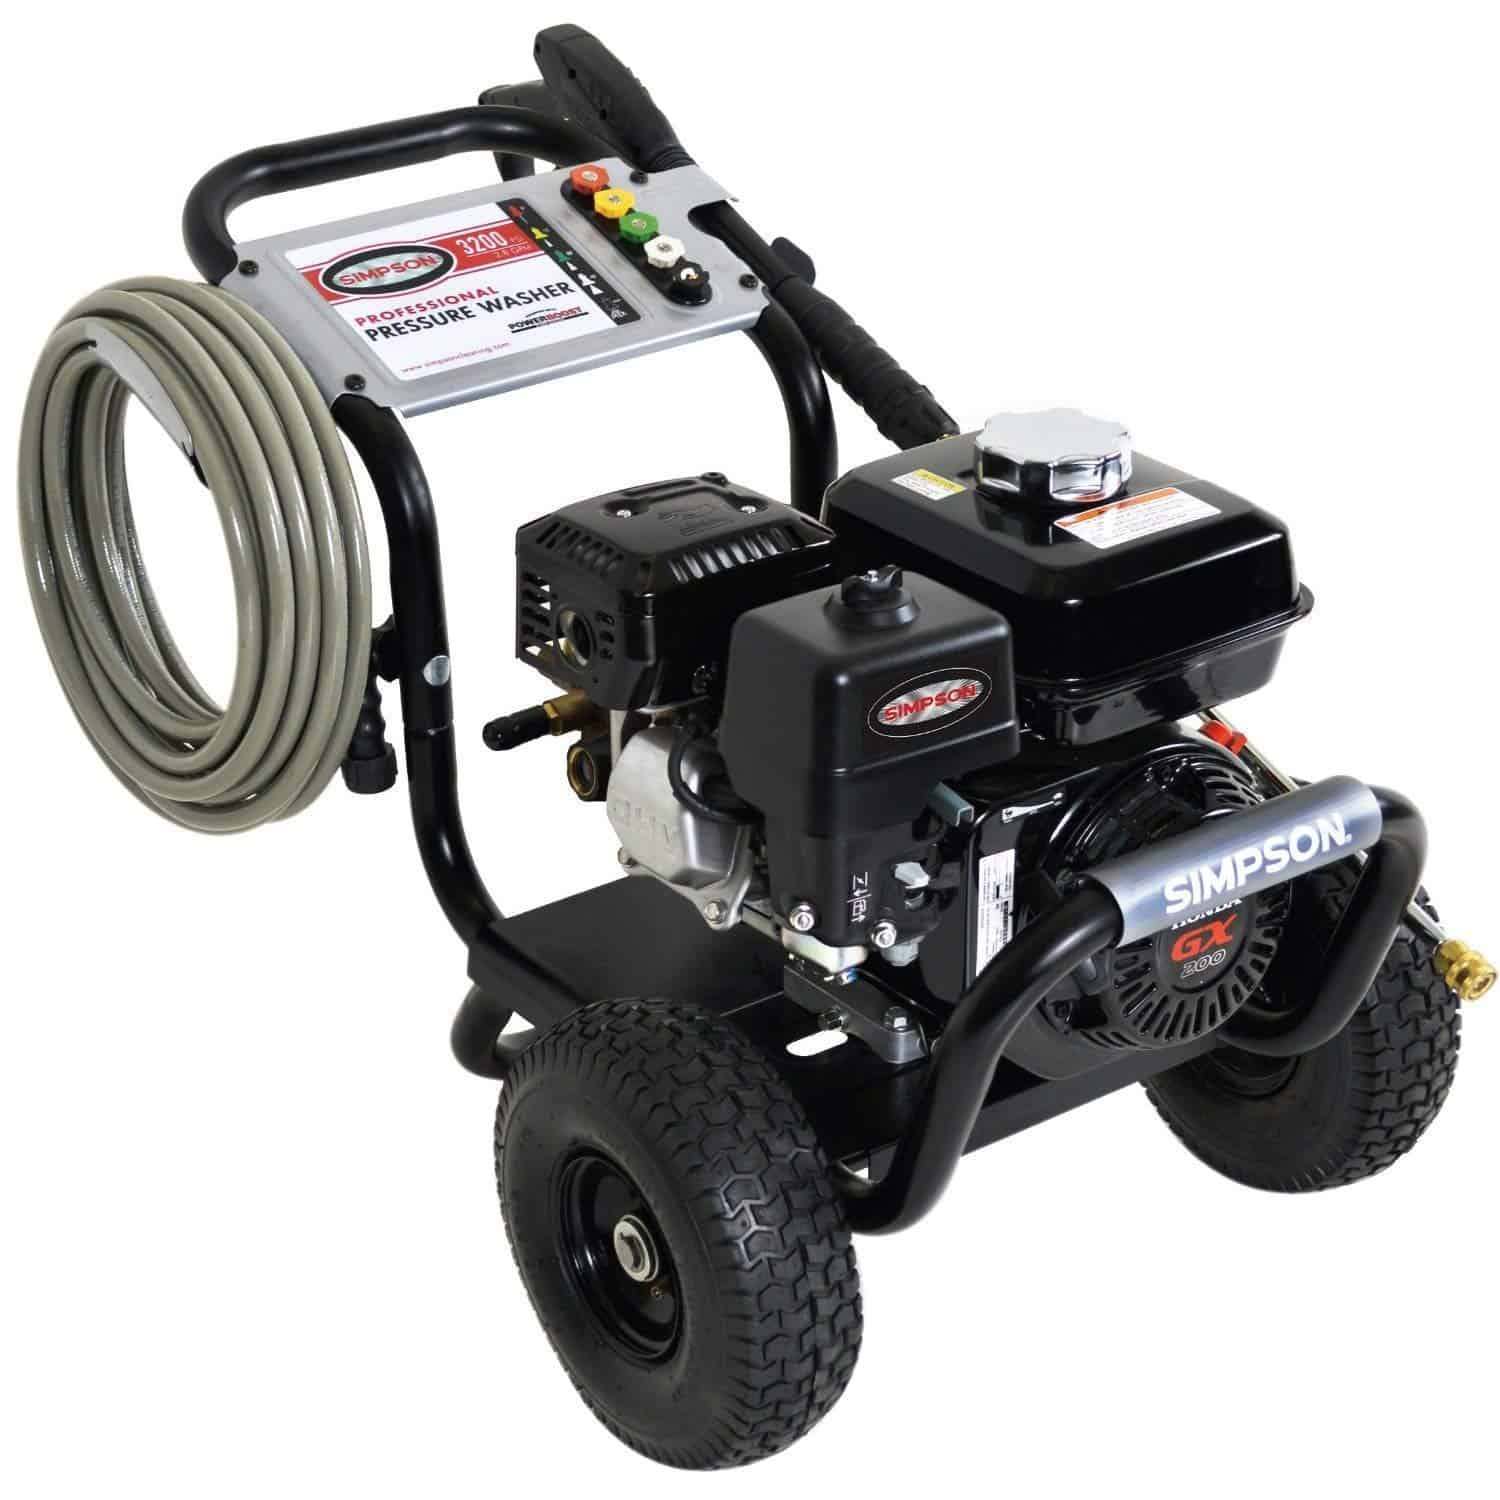 Simpson Cleaning PS3228-S 3300 PSI Gas Pressure Washer